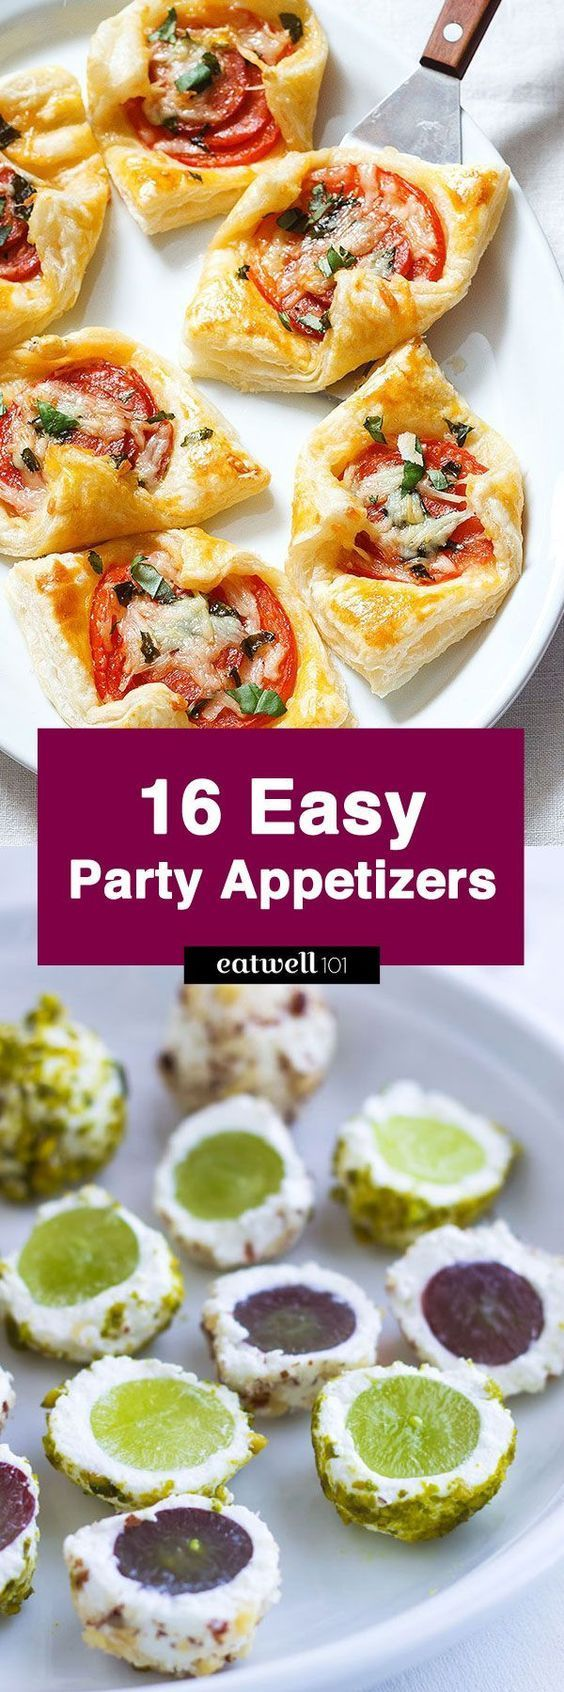 Appetizers For Party 17 Delicious And Easy Recipes Appetizer Recipes Quick Appetizers Appetizers Easy